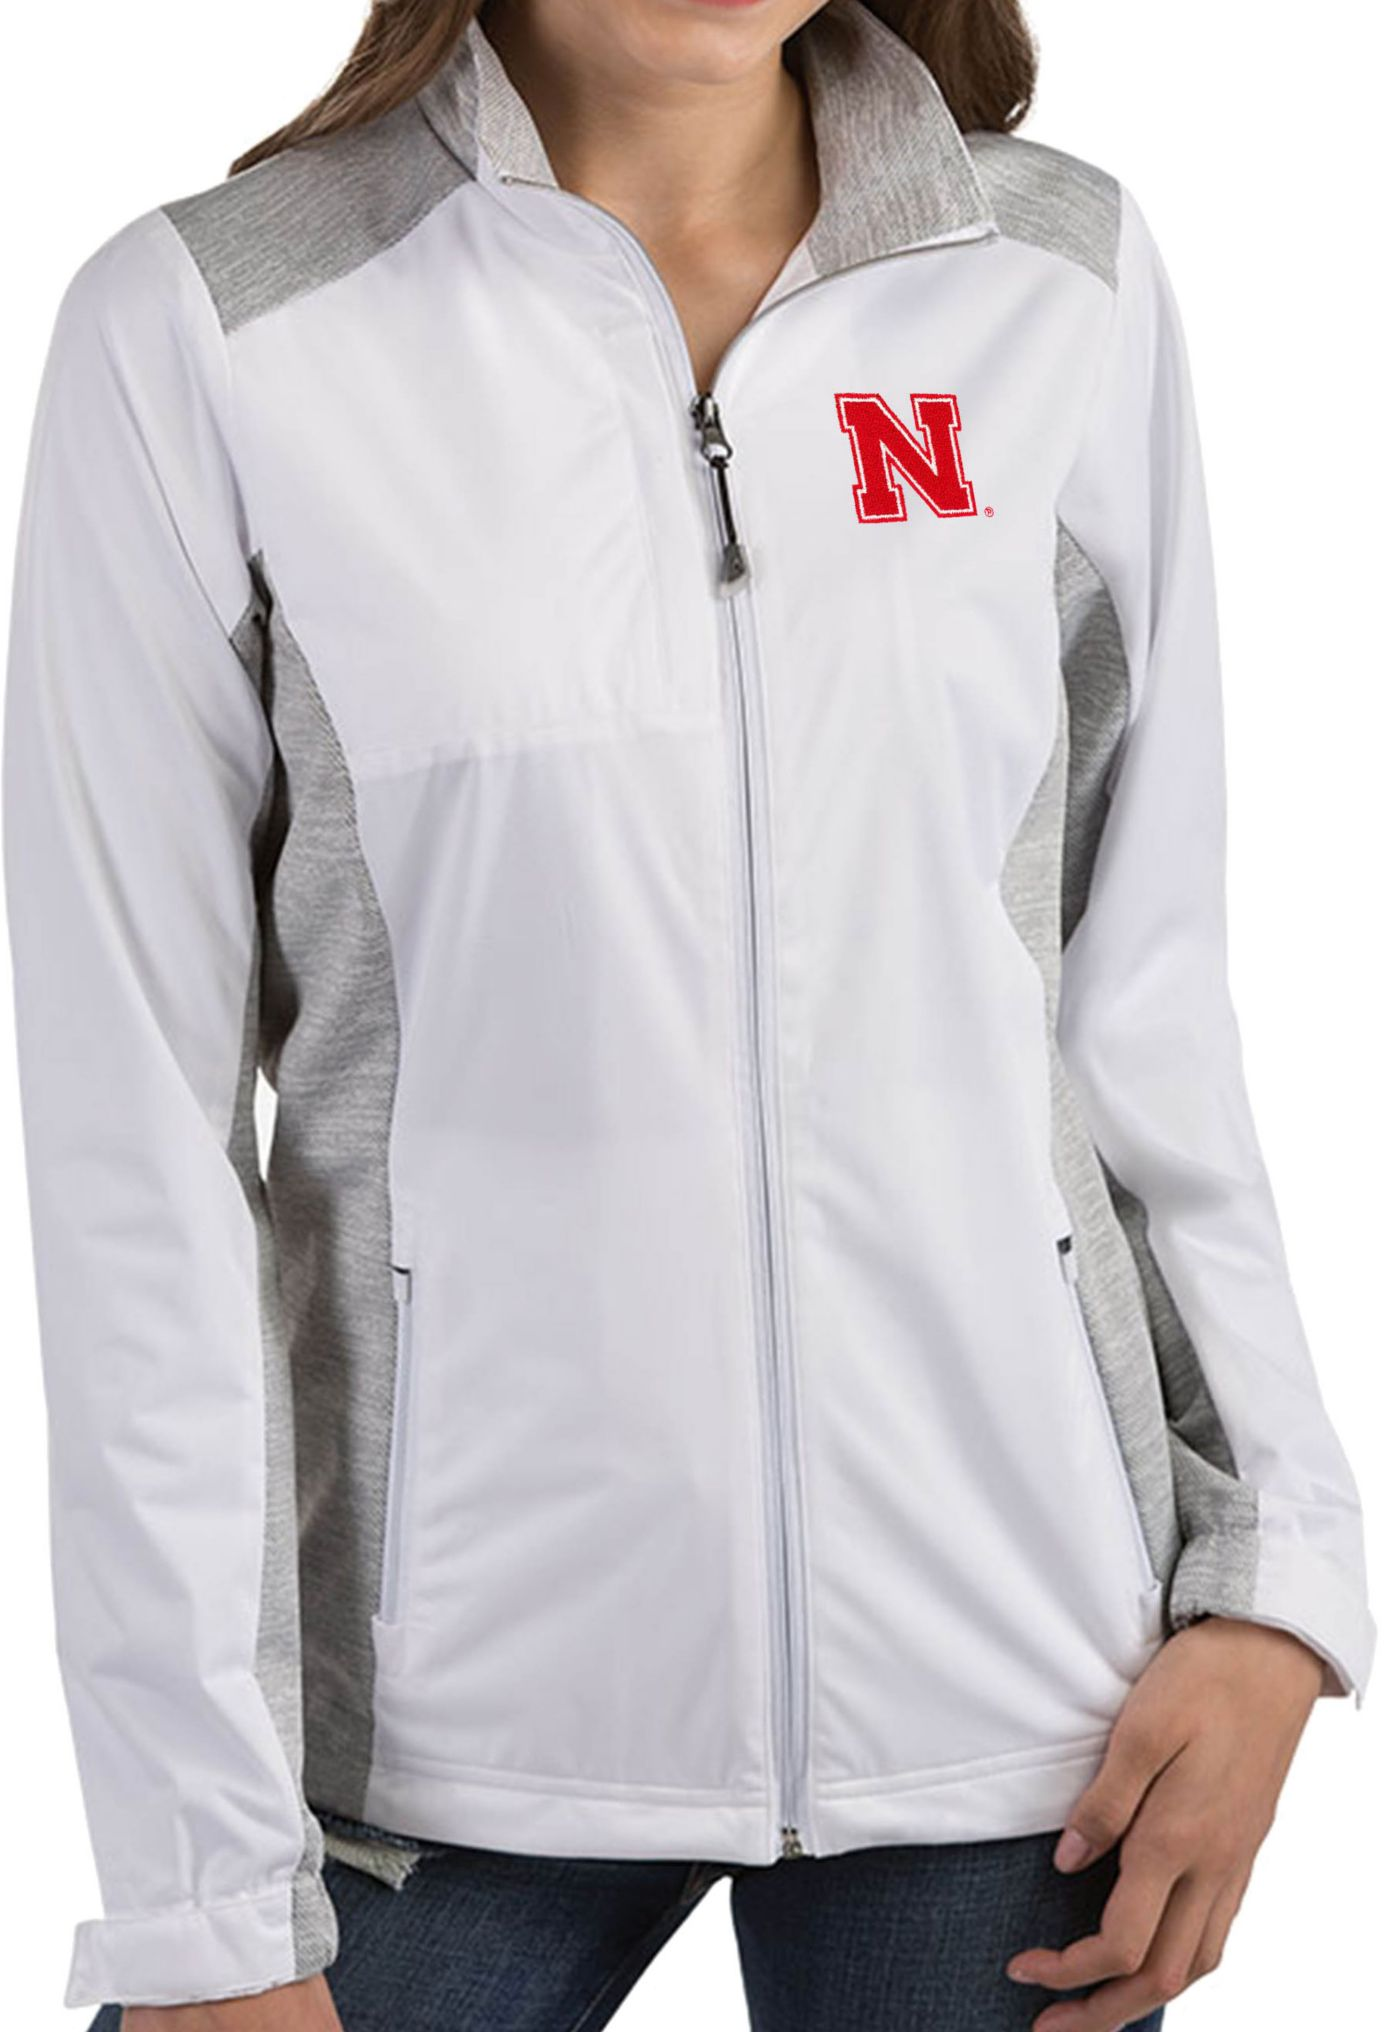 Antigua Women's Nebraska Cornhuskers Revolve Full-Zip White Jacket